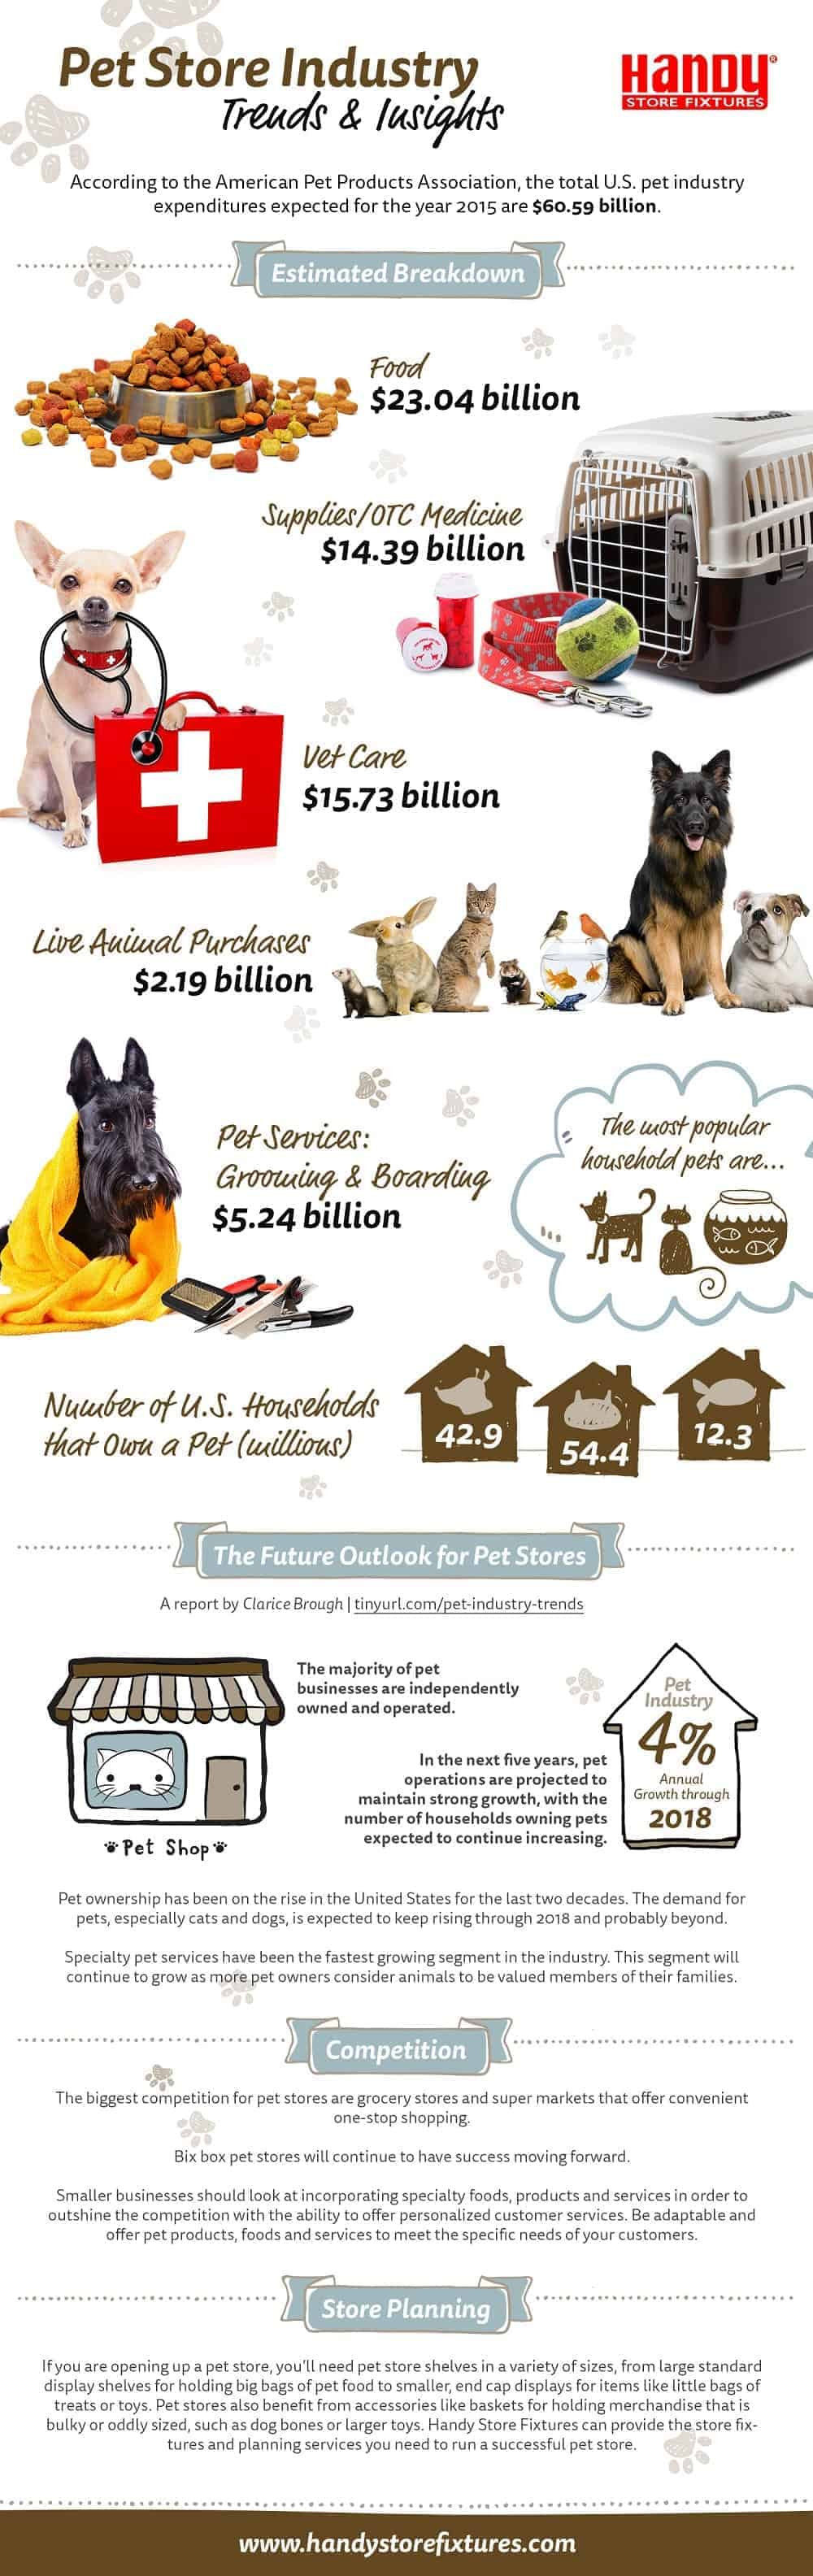 pet industry stats and trends